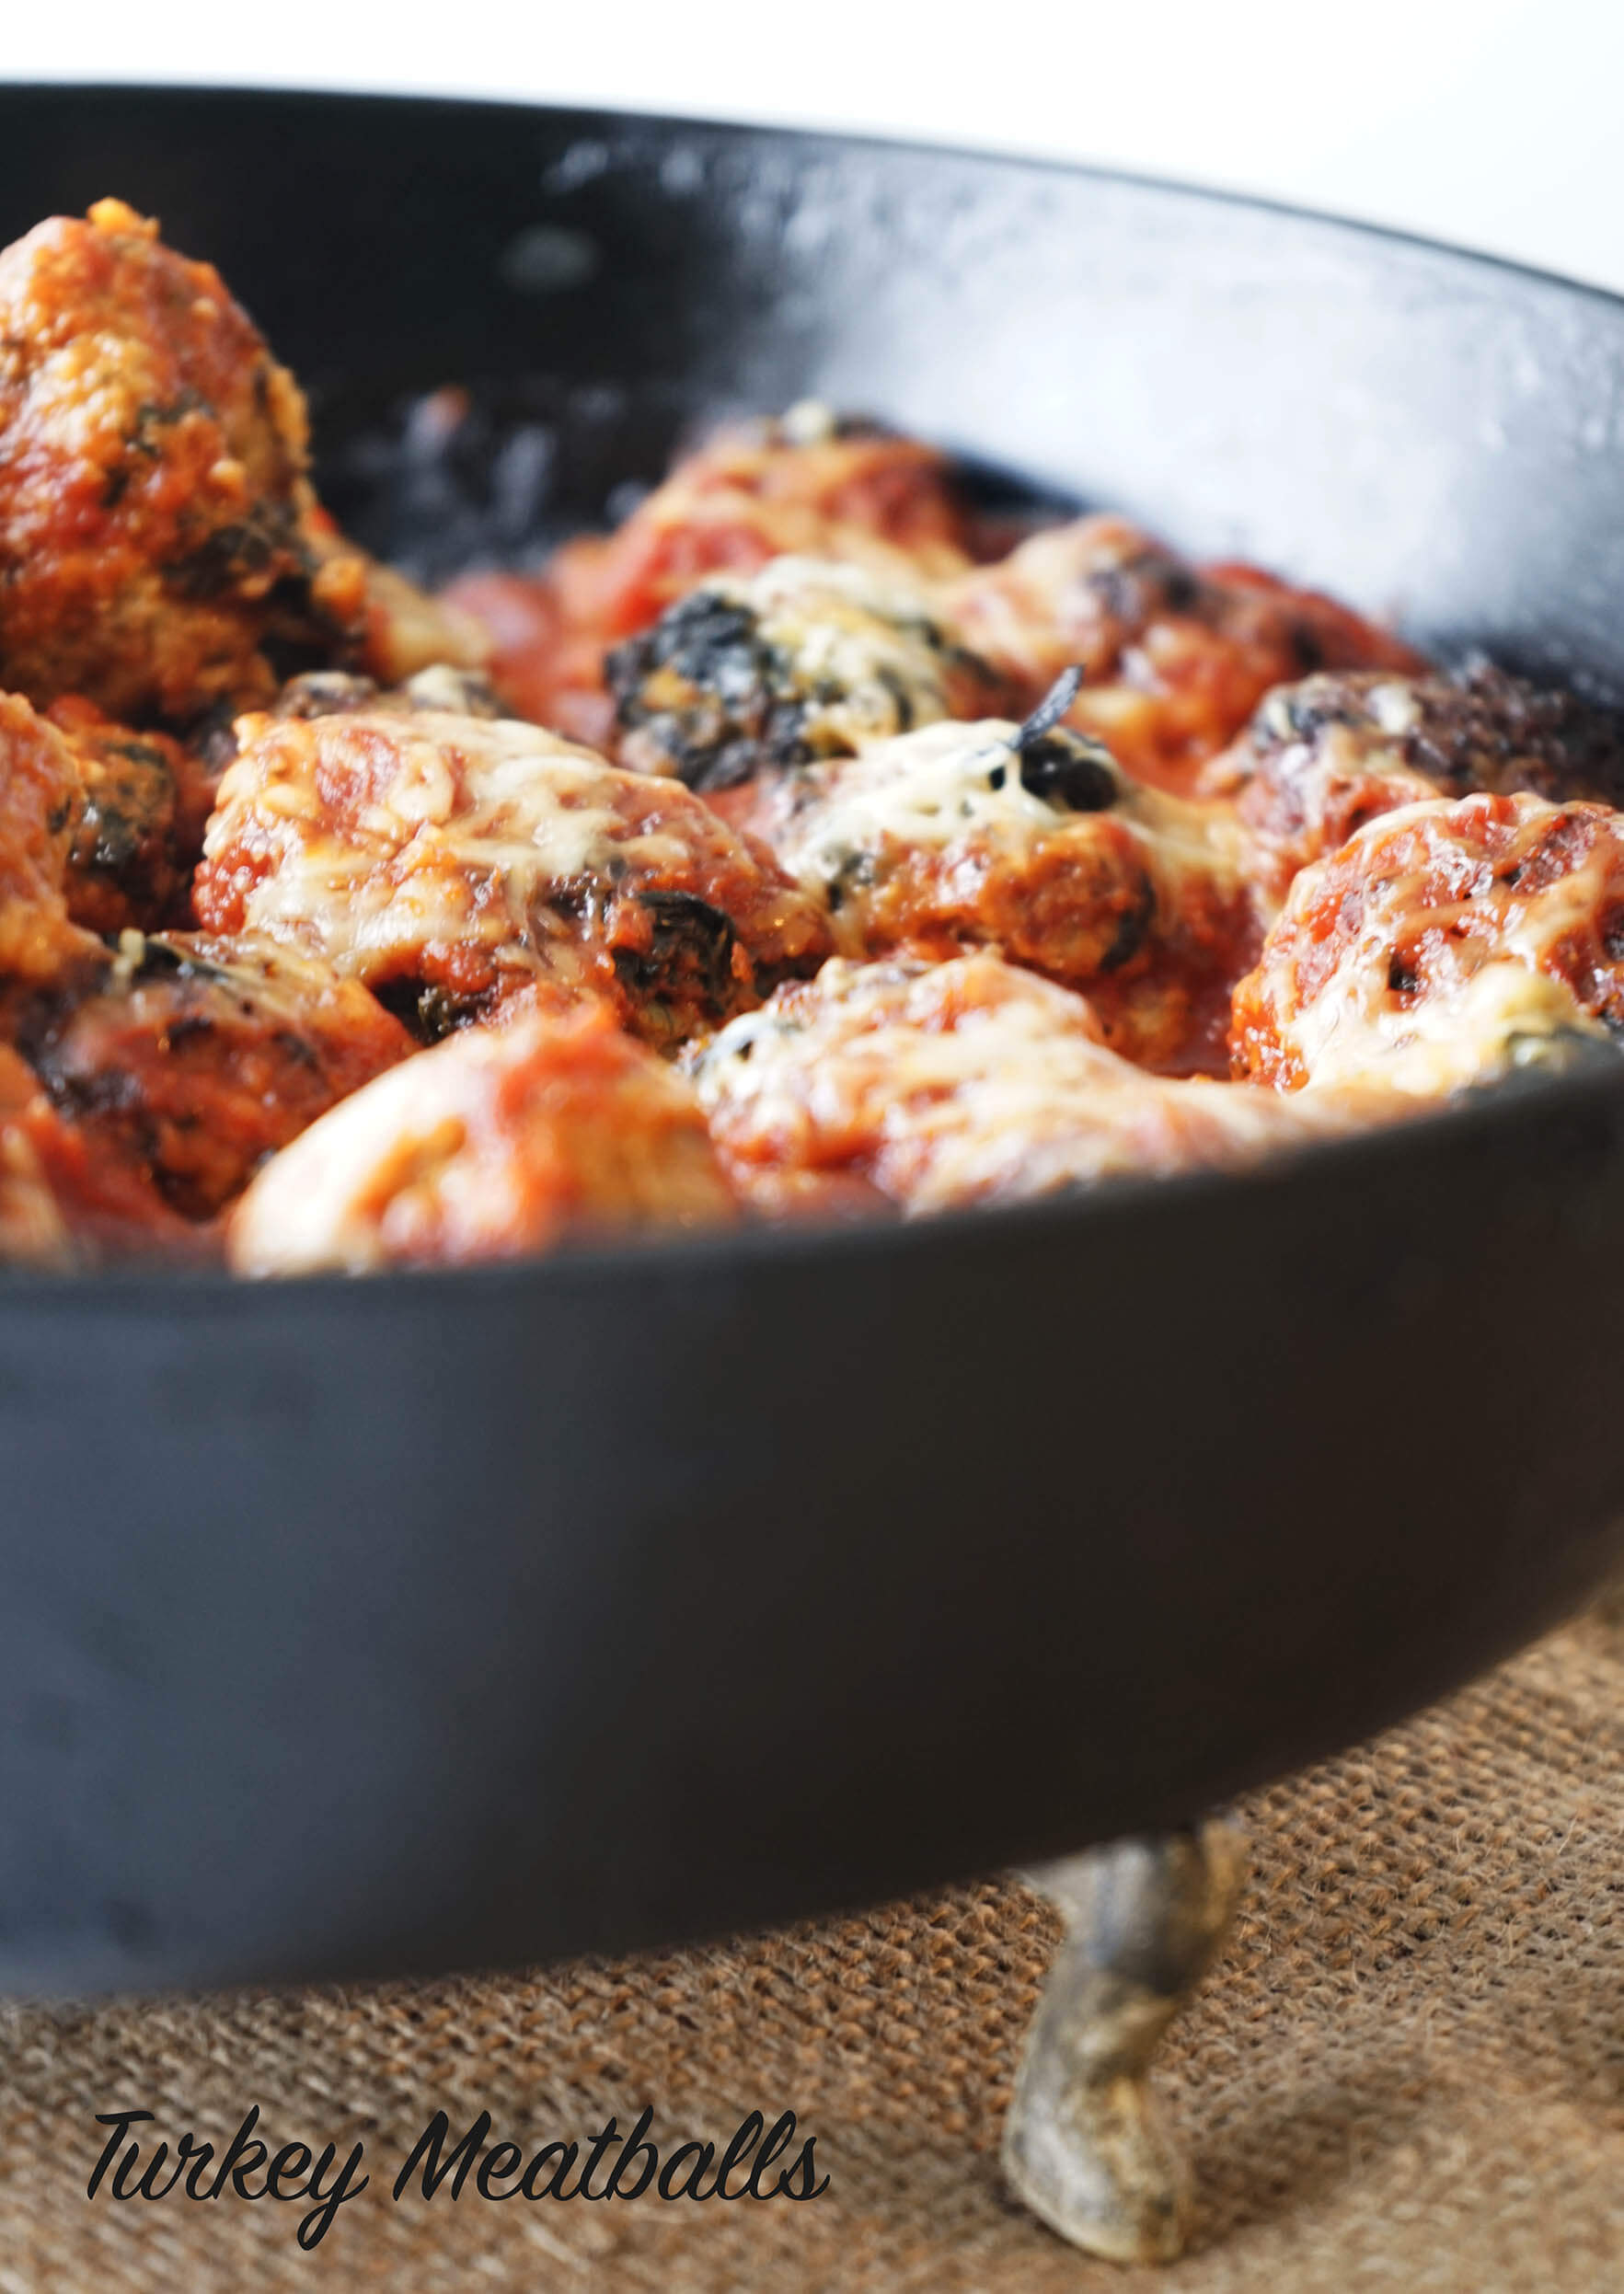 Easy Turkey Meatball Recipe in skillet topped with cheese.